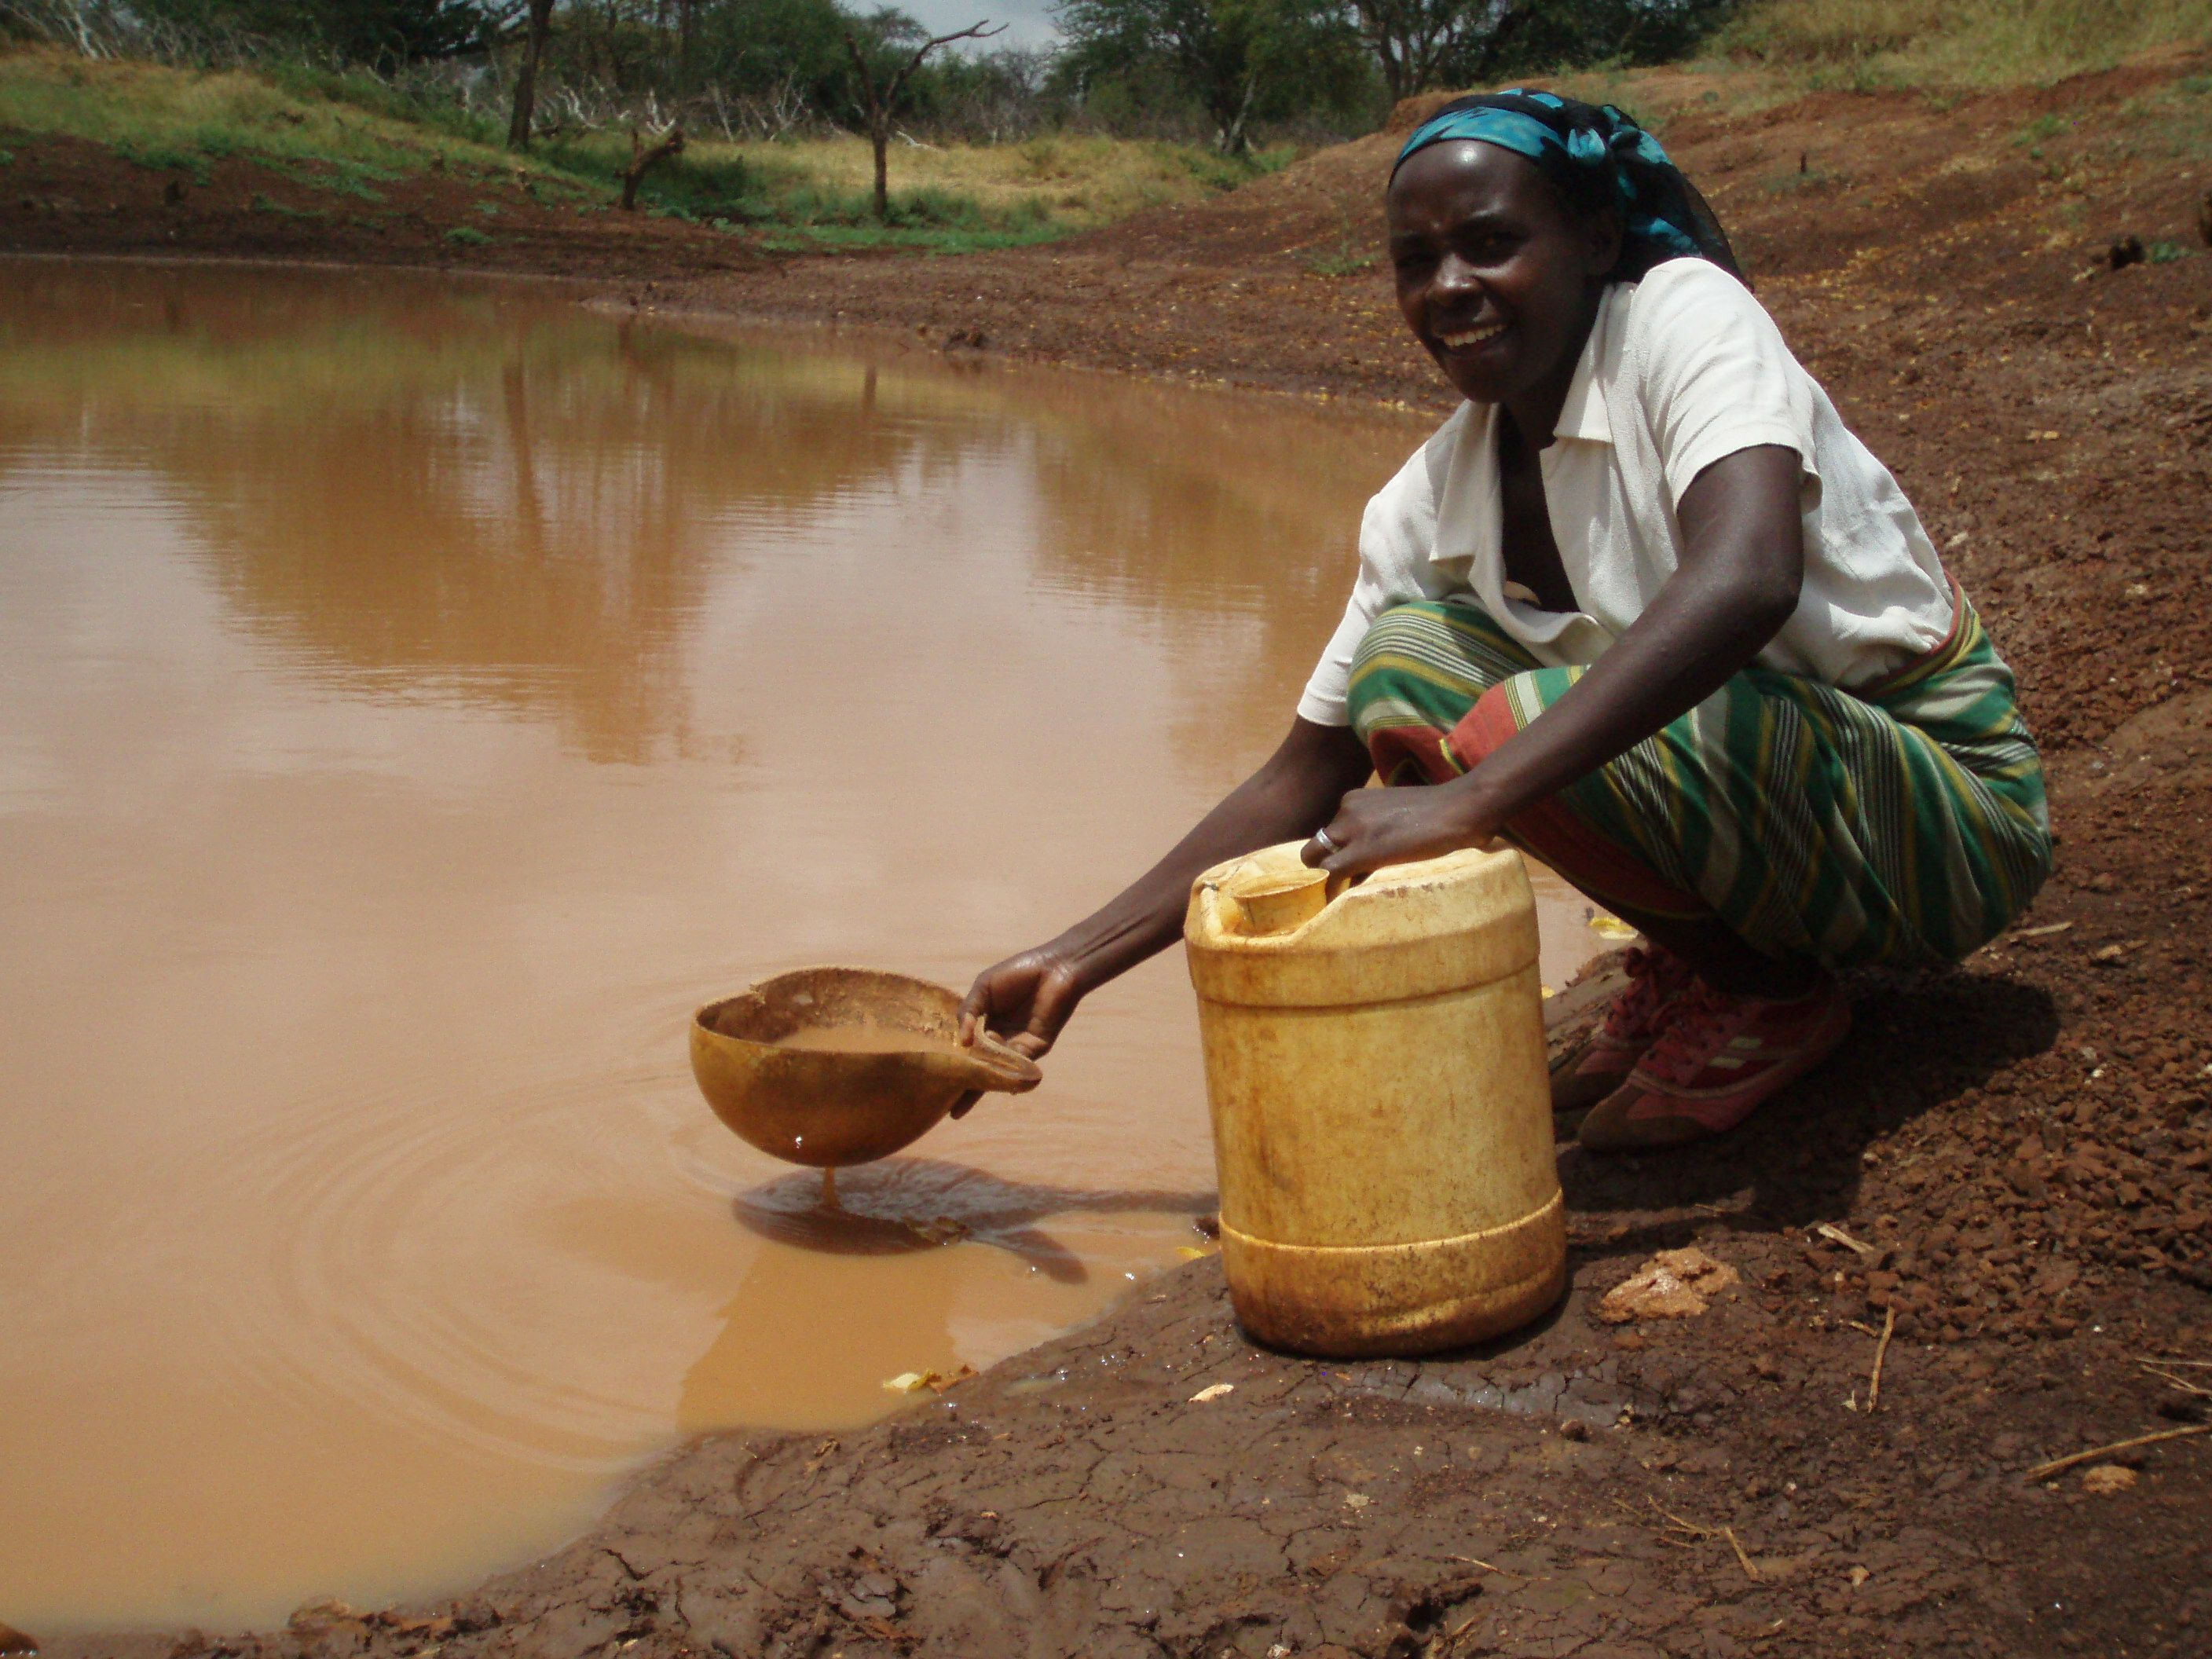 Help provide clean drinking water for those in african